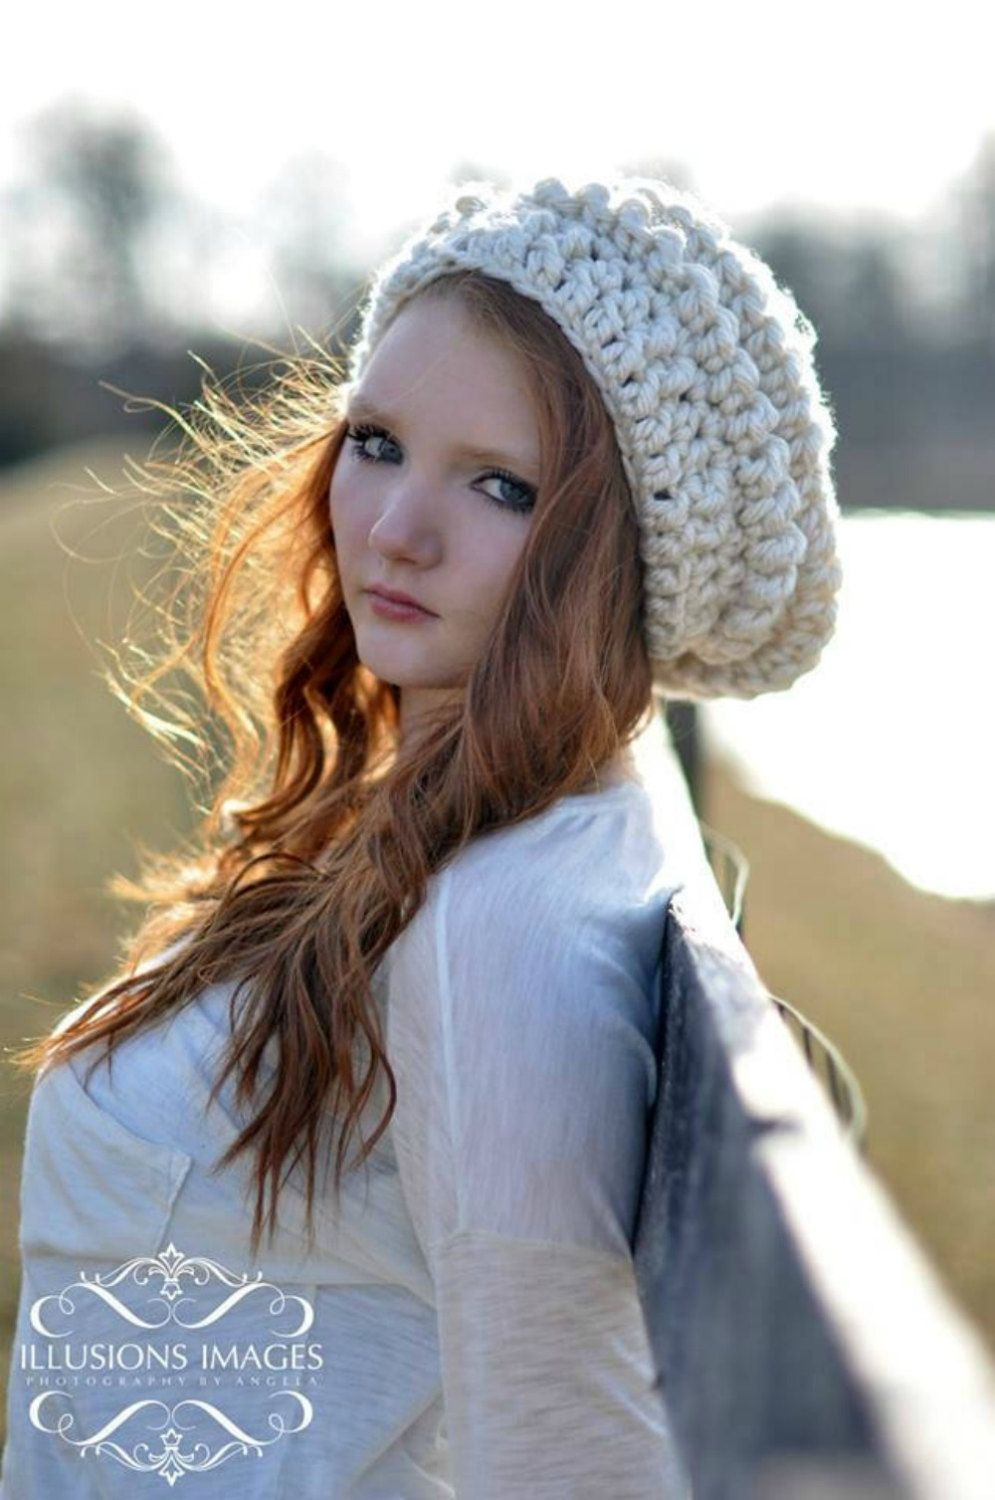 d8d25320be8 Womens Slouchy Beanie Winter Hat for Women Ivory Hat Teenager Clothing  Chunky Slouch Hat Cream Hat Soft Hats Gifts for Teen Girls Trendy Hat by ...